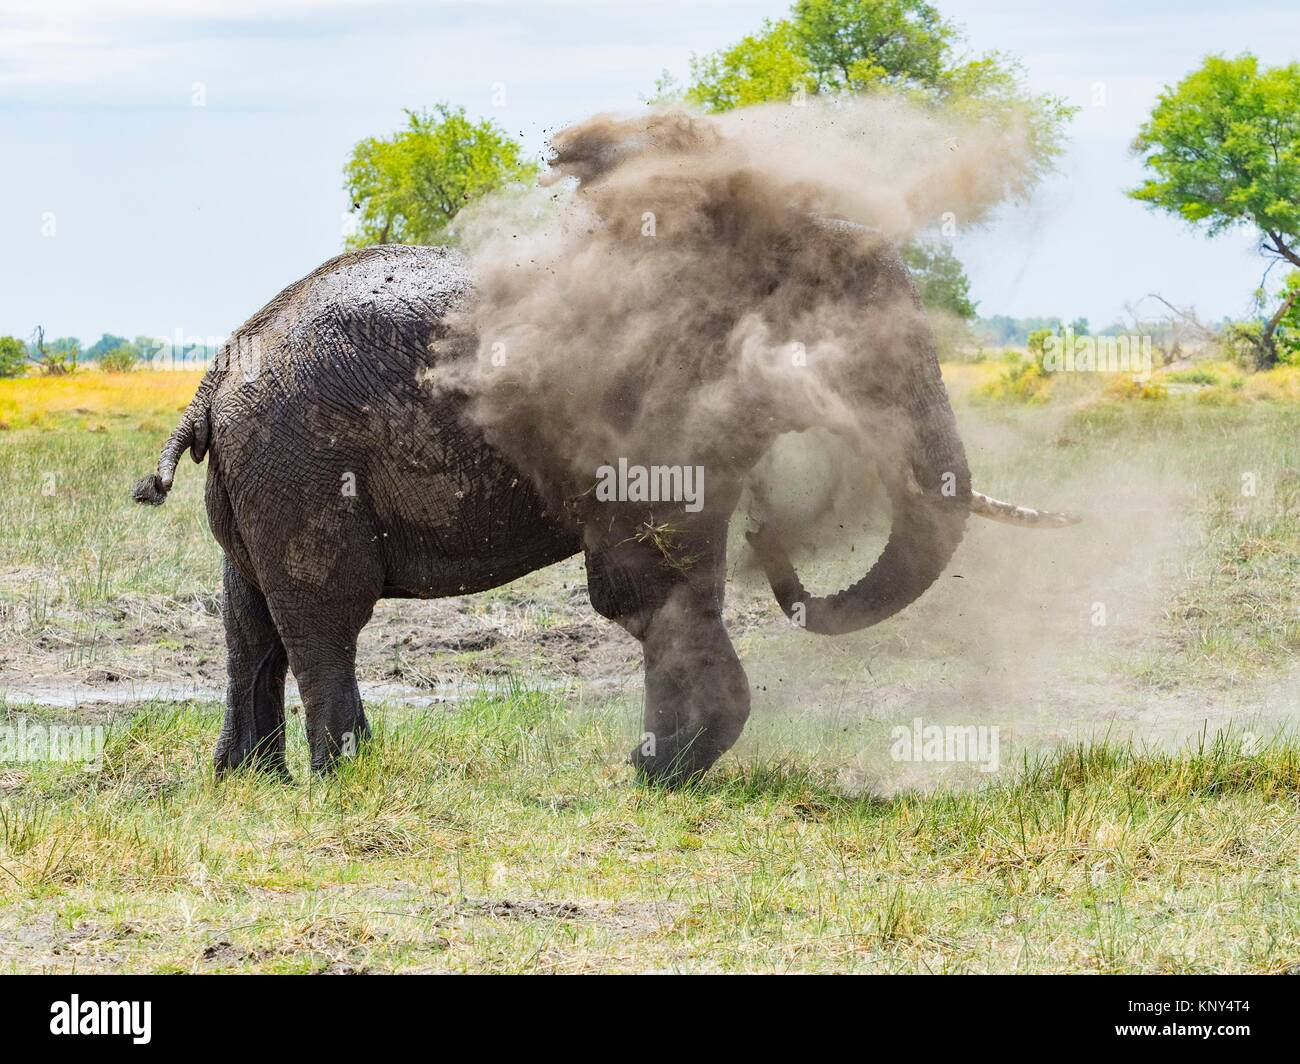 Botswana. Elephant Dust Bath. - Stock Image